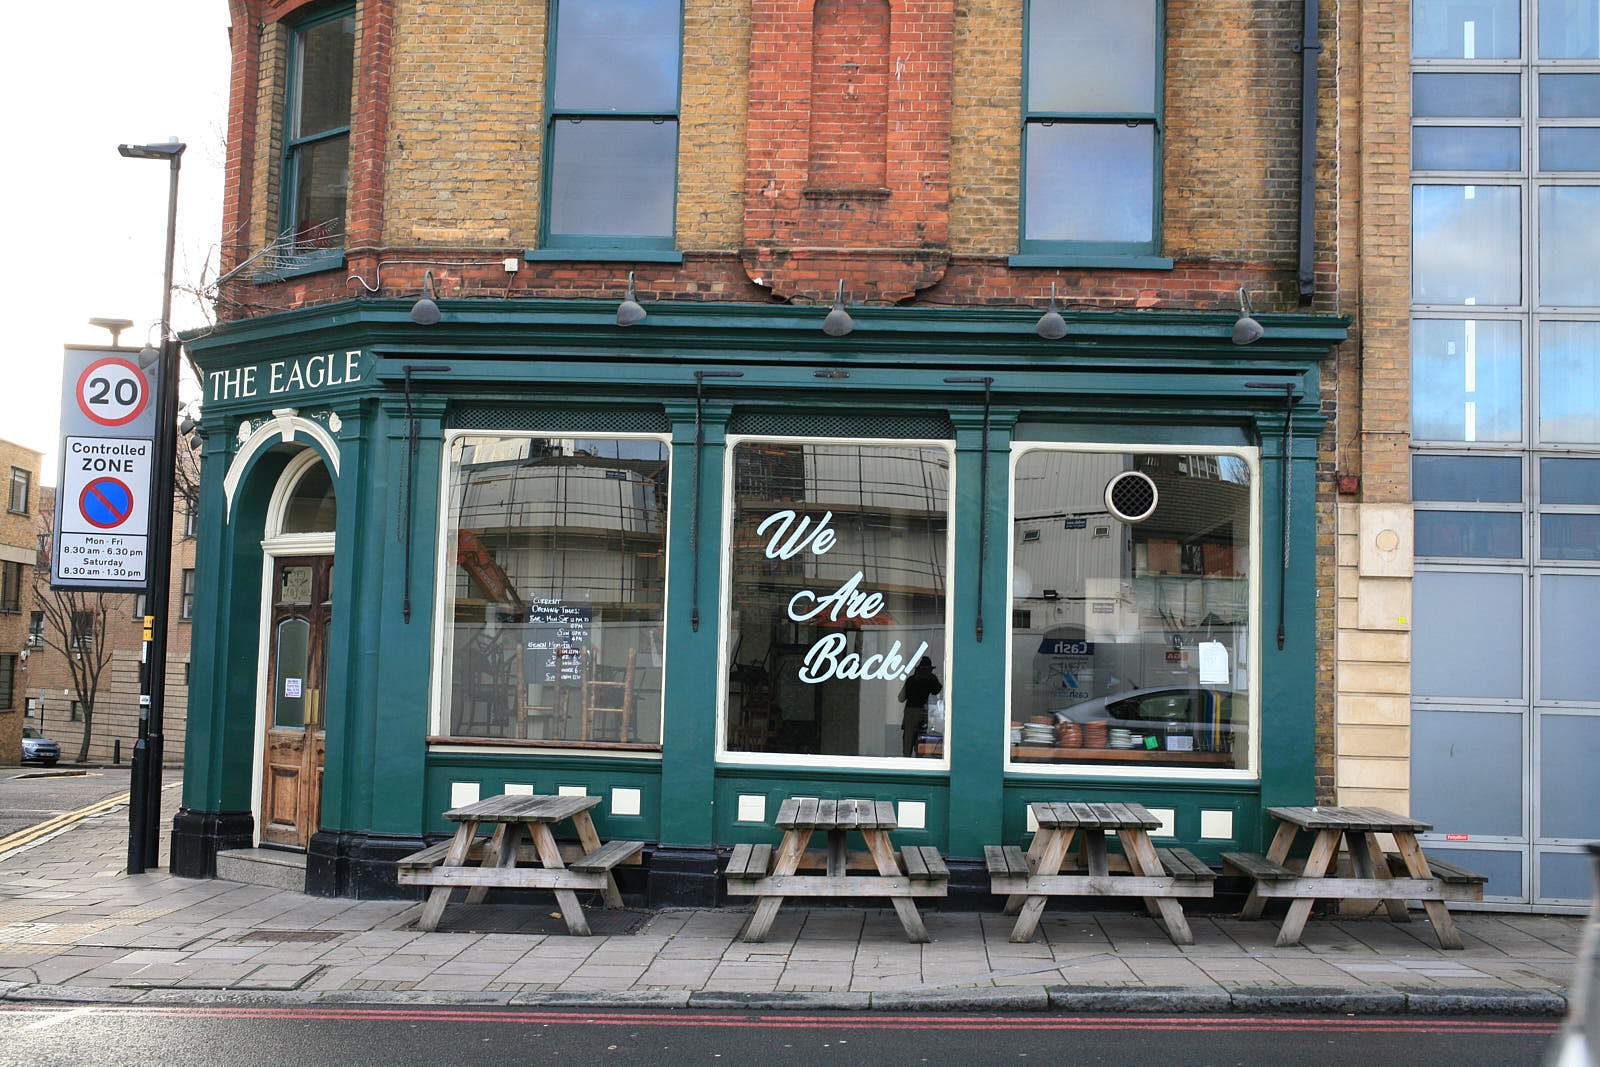 One of the country's original gastropubs, The Eagle in Farringdon closed during the coronavirus lockdown in London